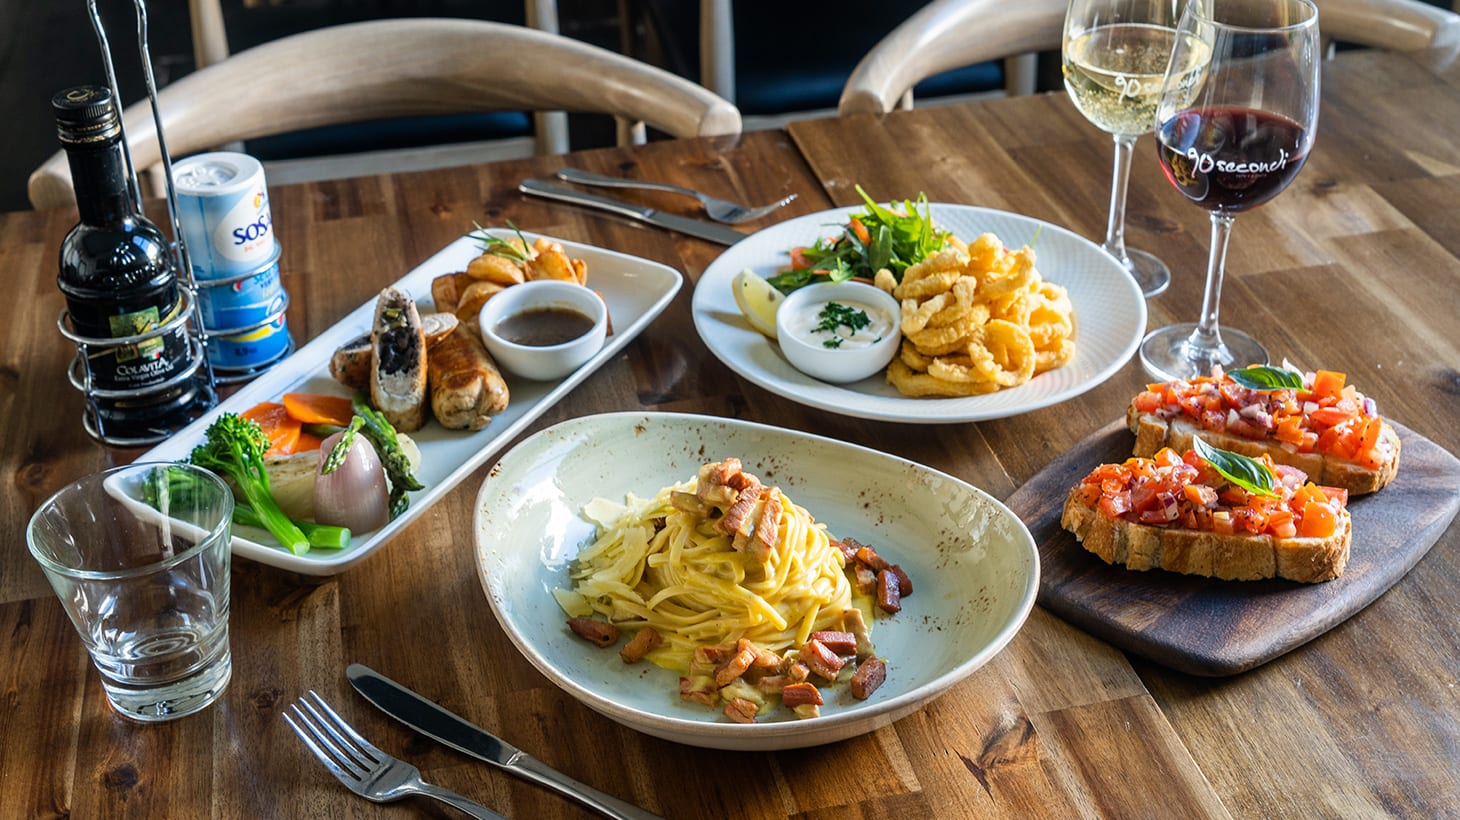 Two Courses with Wine at Award-Winning Italian Restaurant 90 Secondi Brighton Brighton